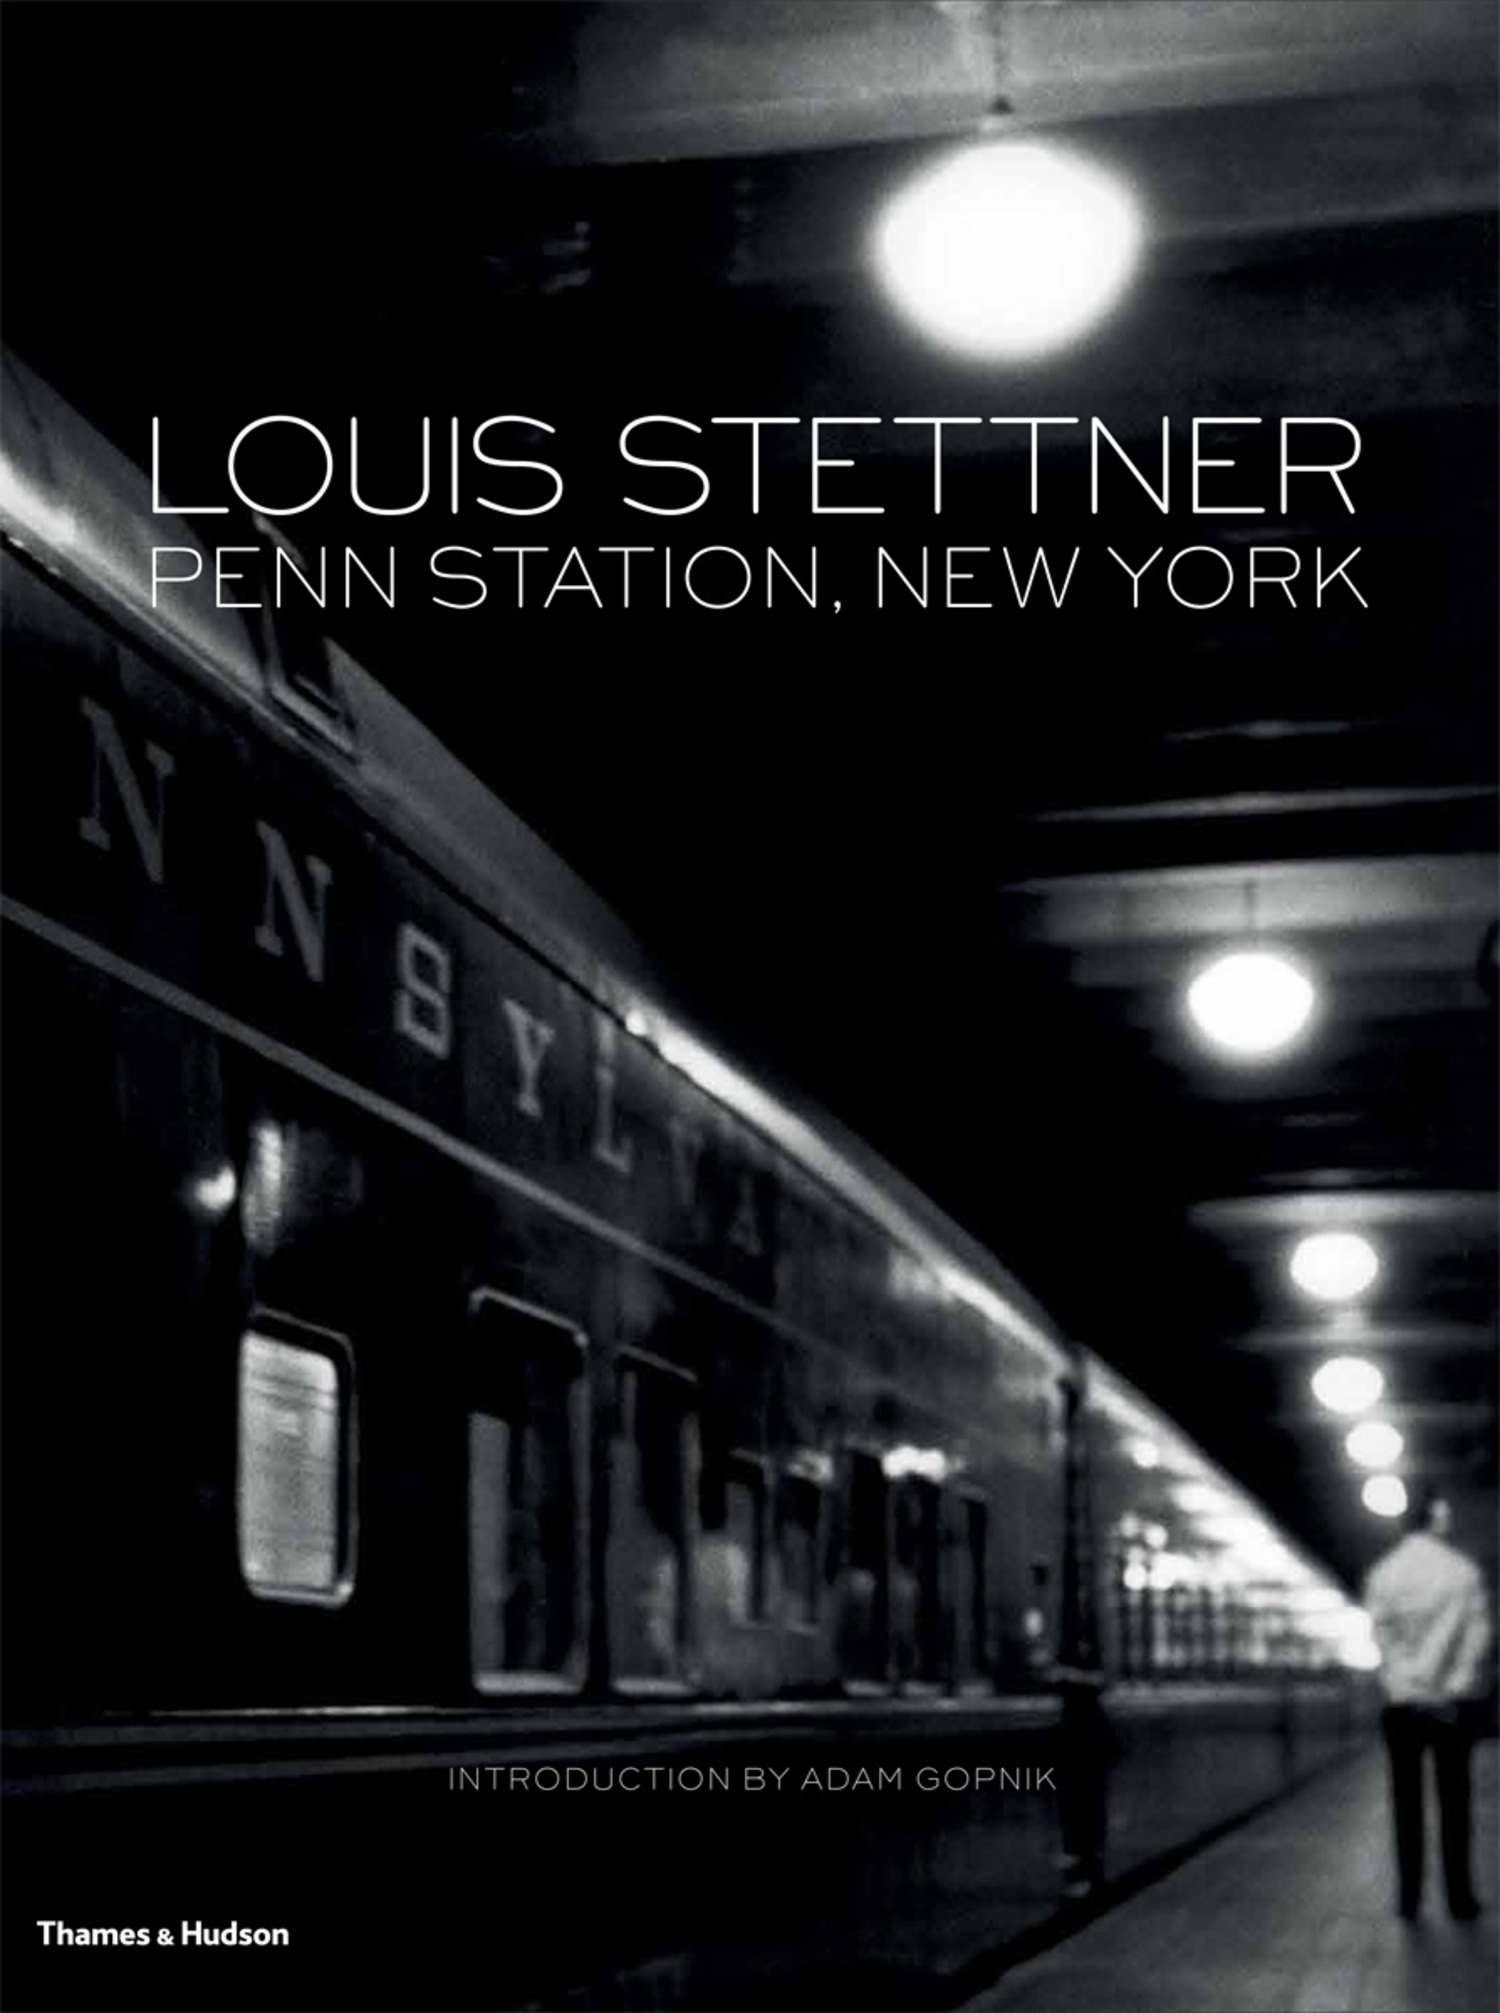 Penn Station, New York, Louis Stettner 2016